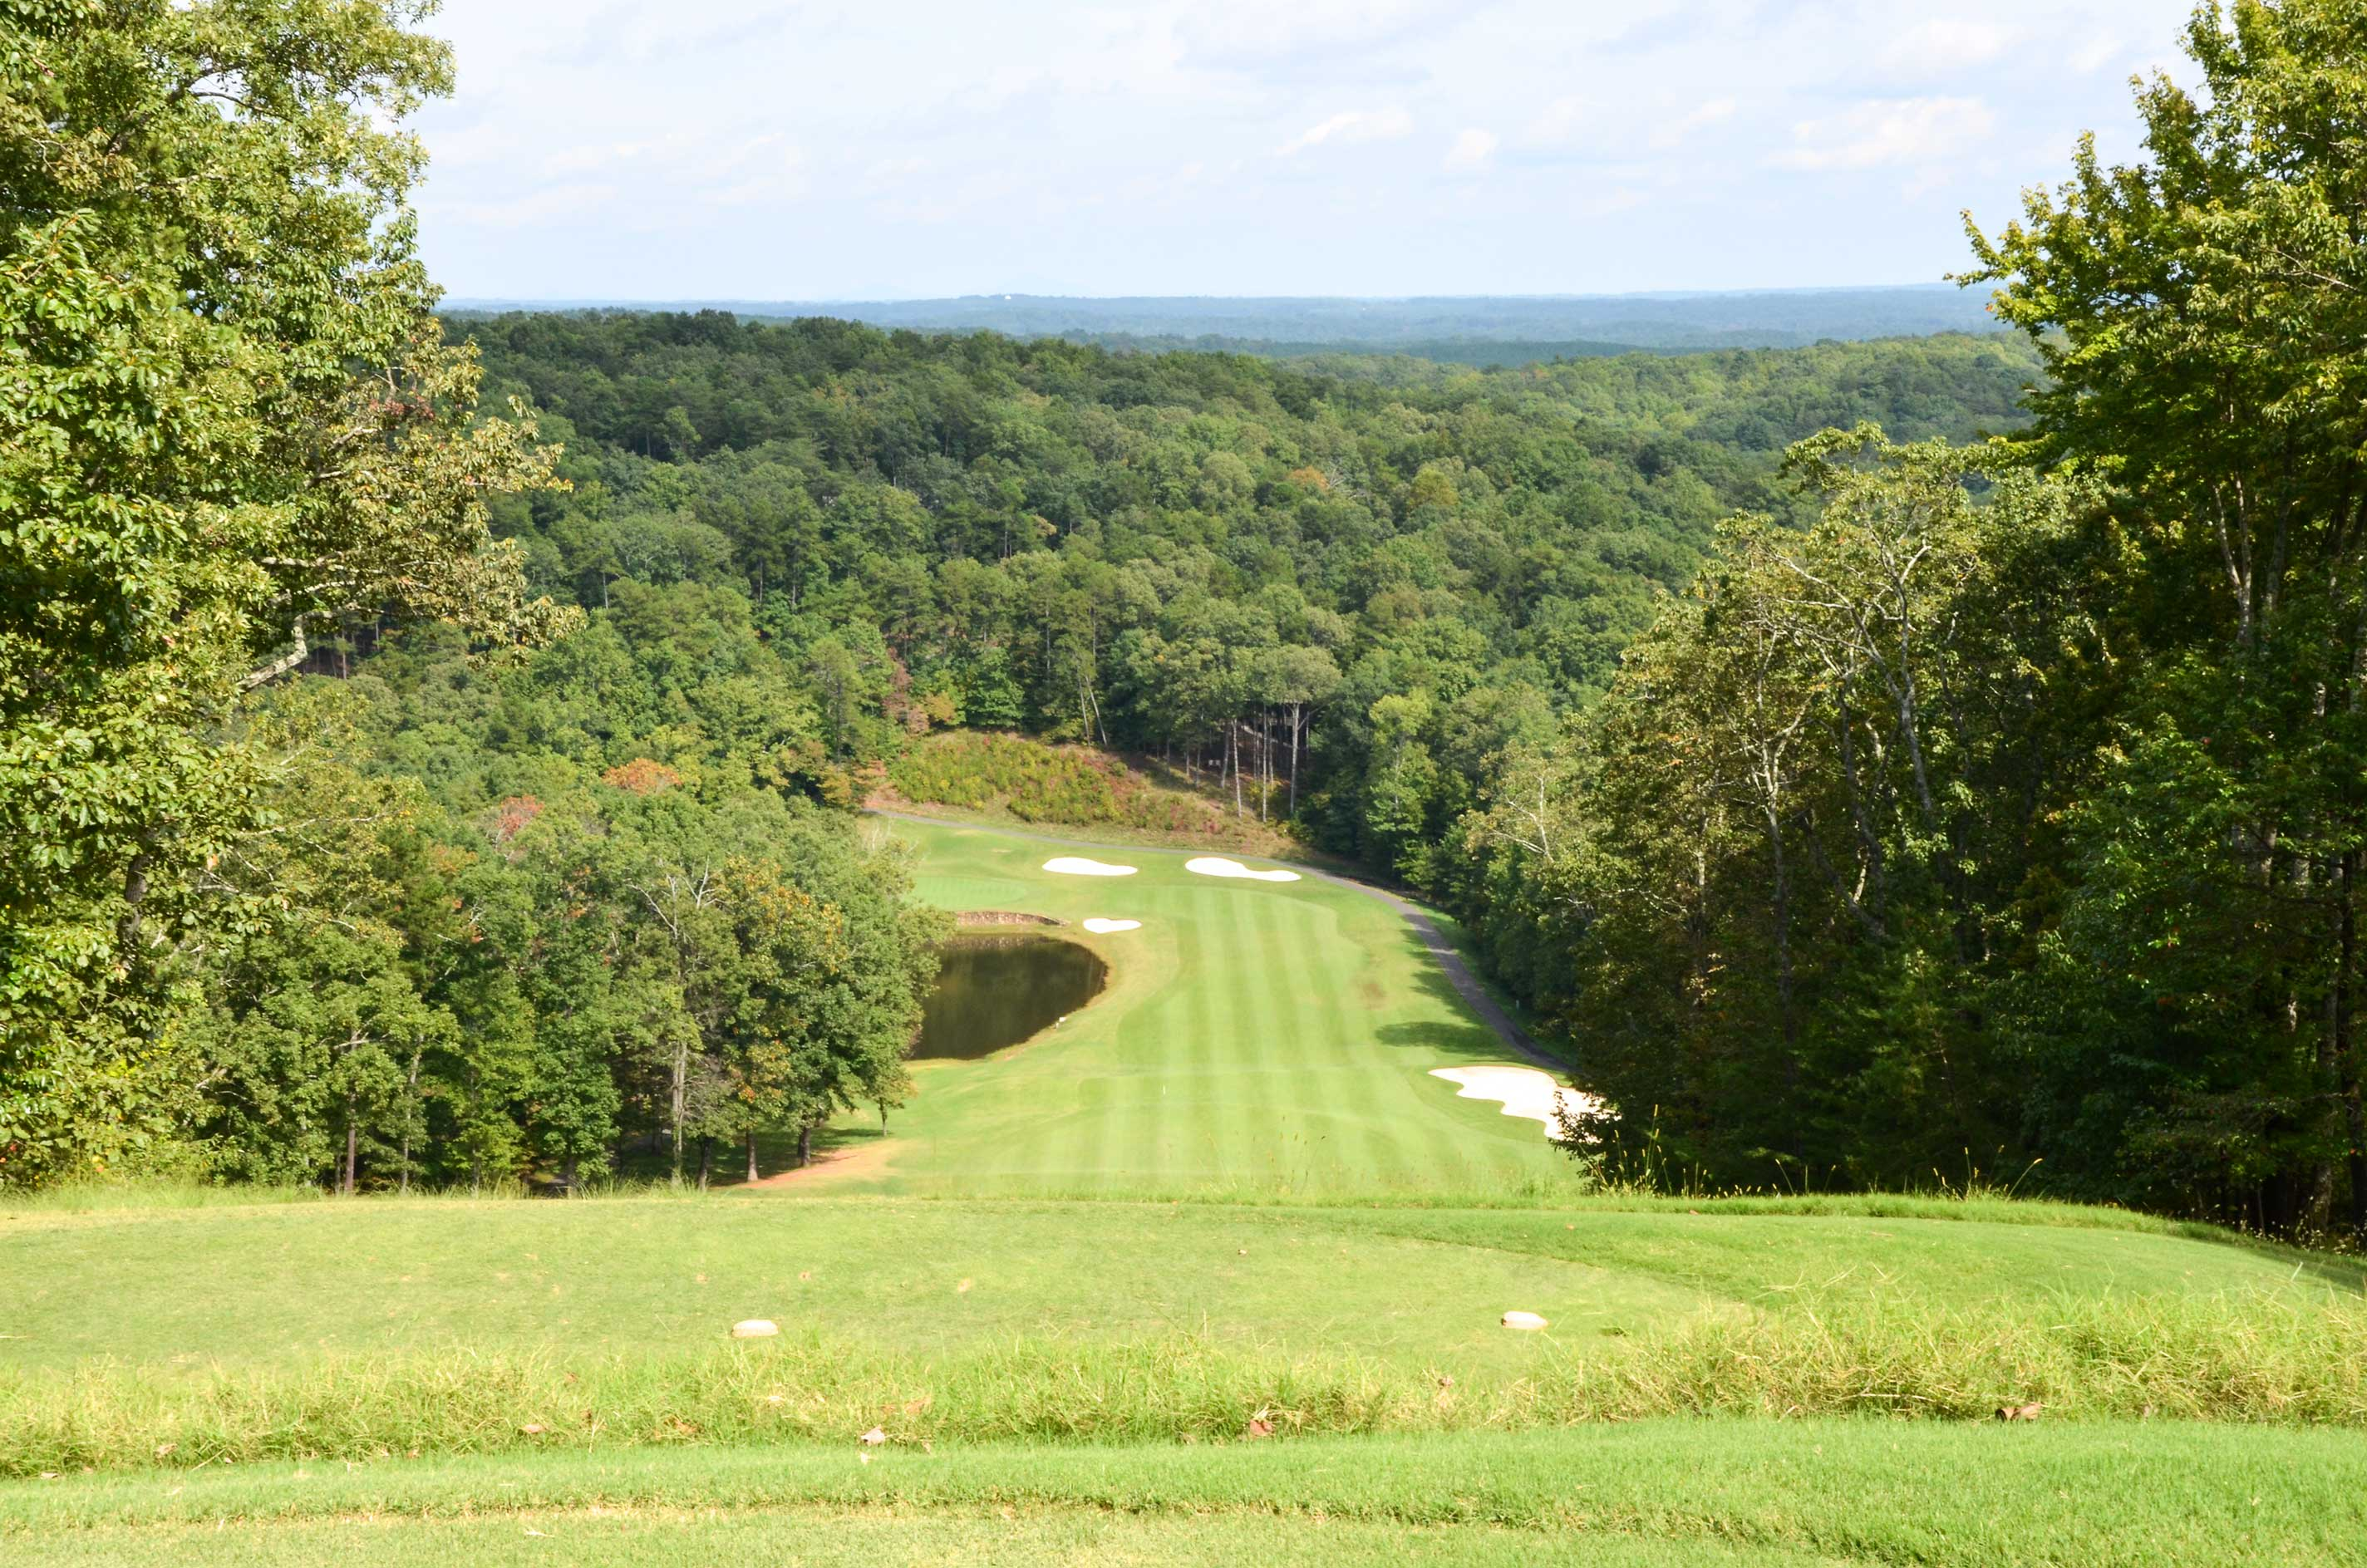 Spend your days out on the green fairways of Big Canoe.